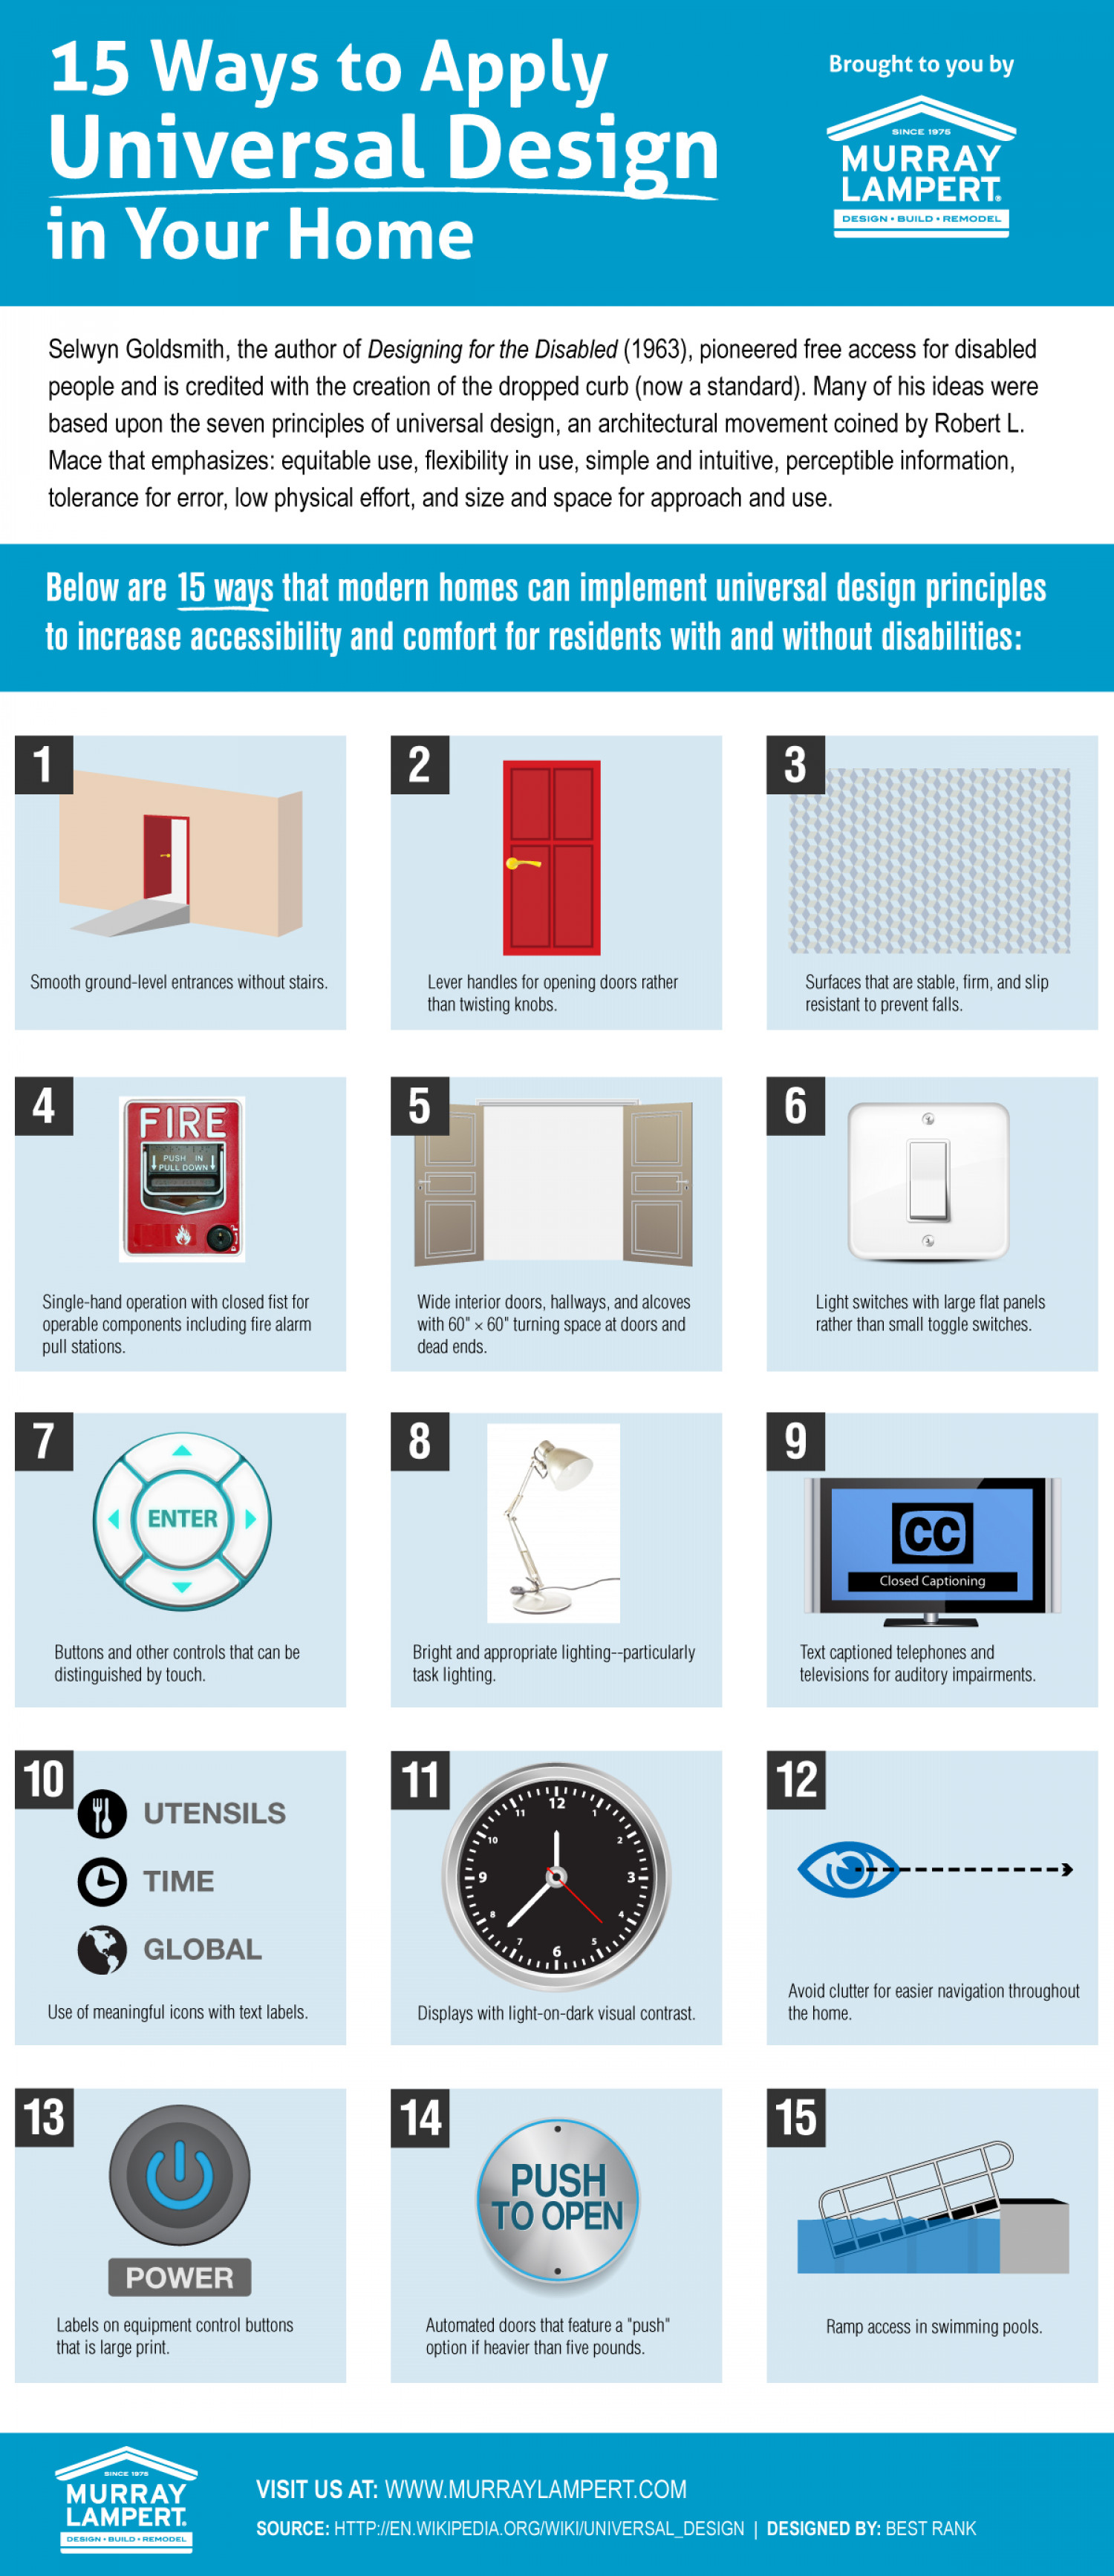 15 Ways to Apply Universal Design in Your Home Infographic